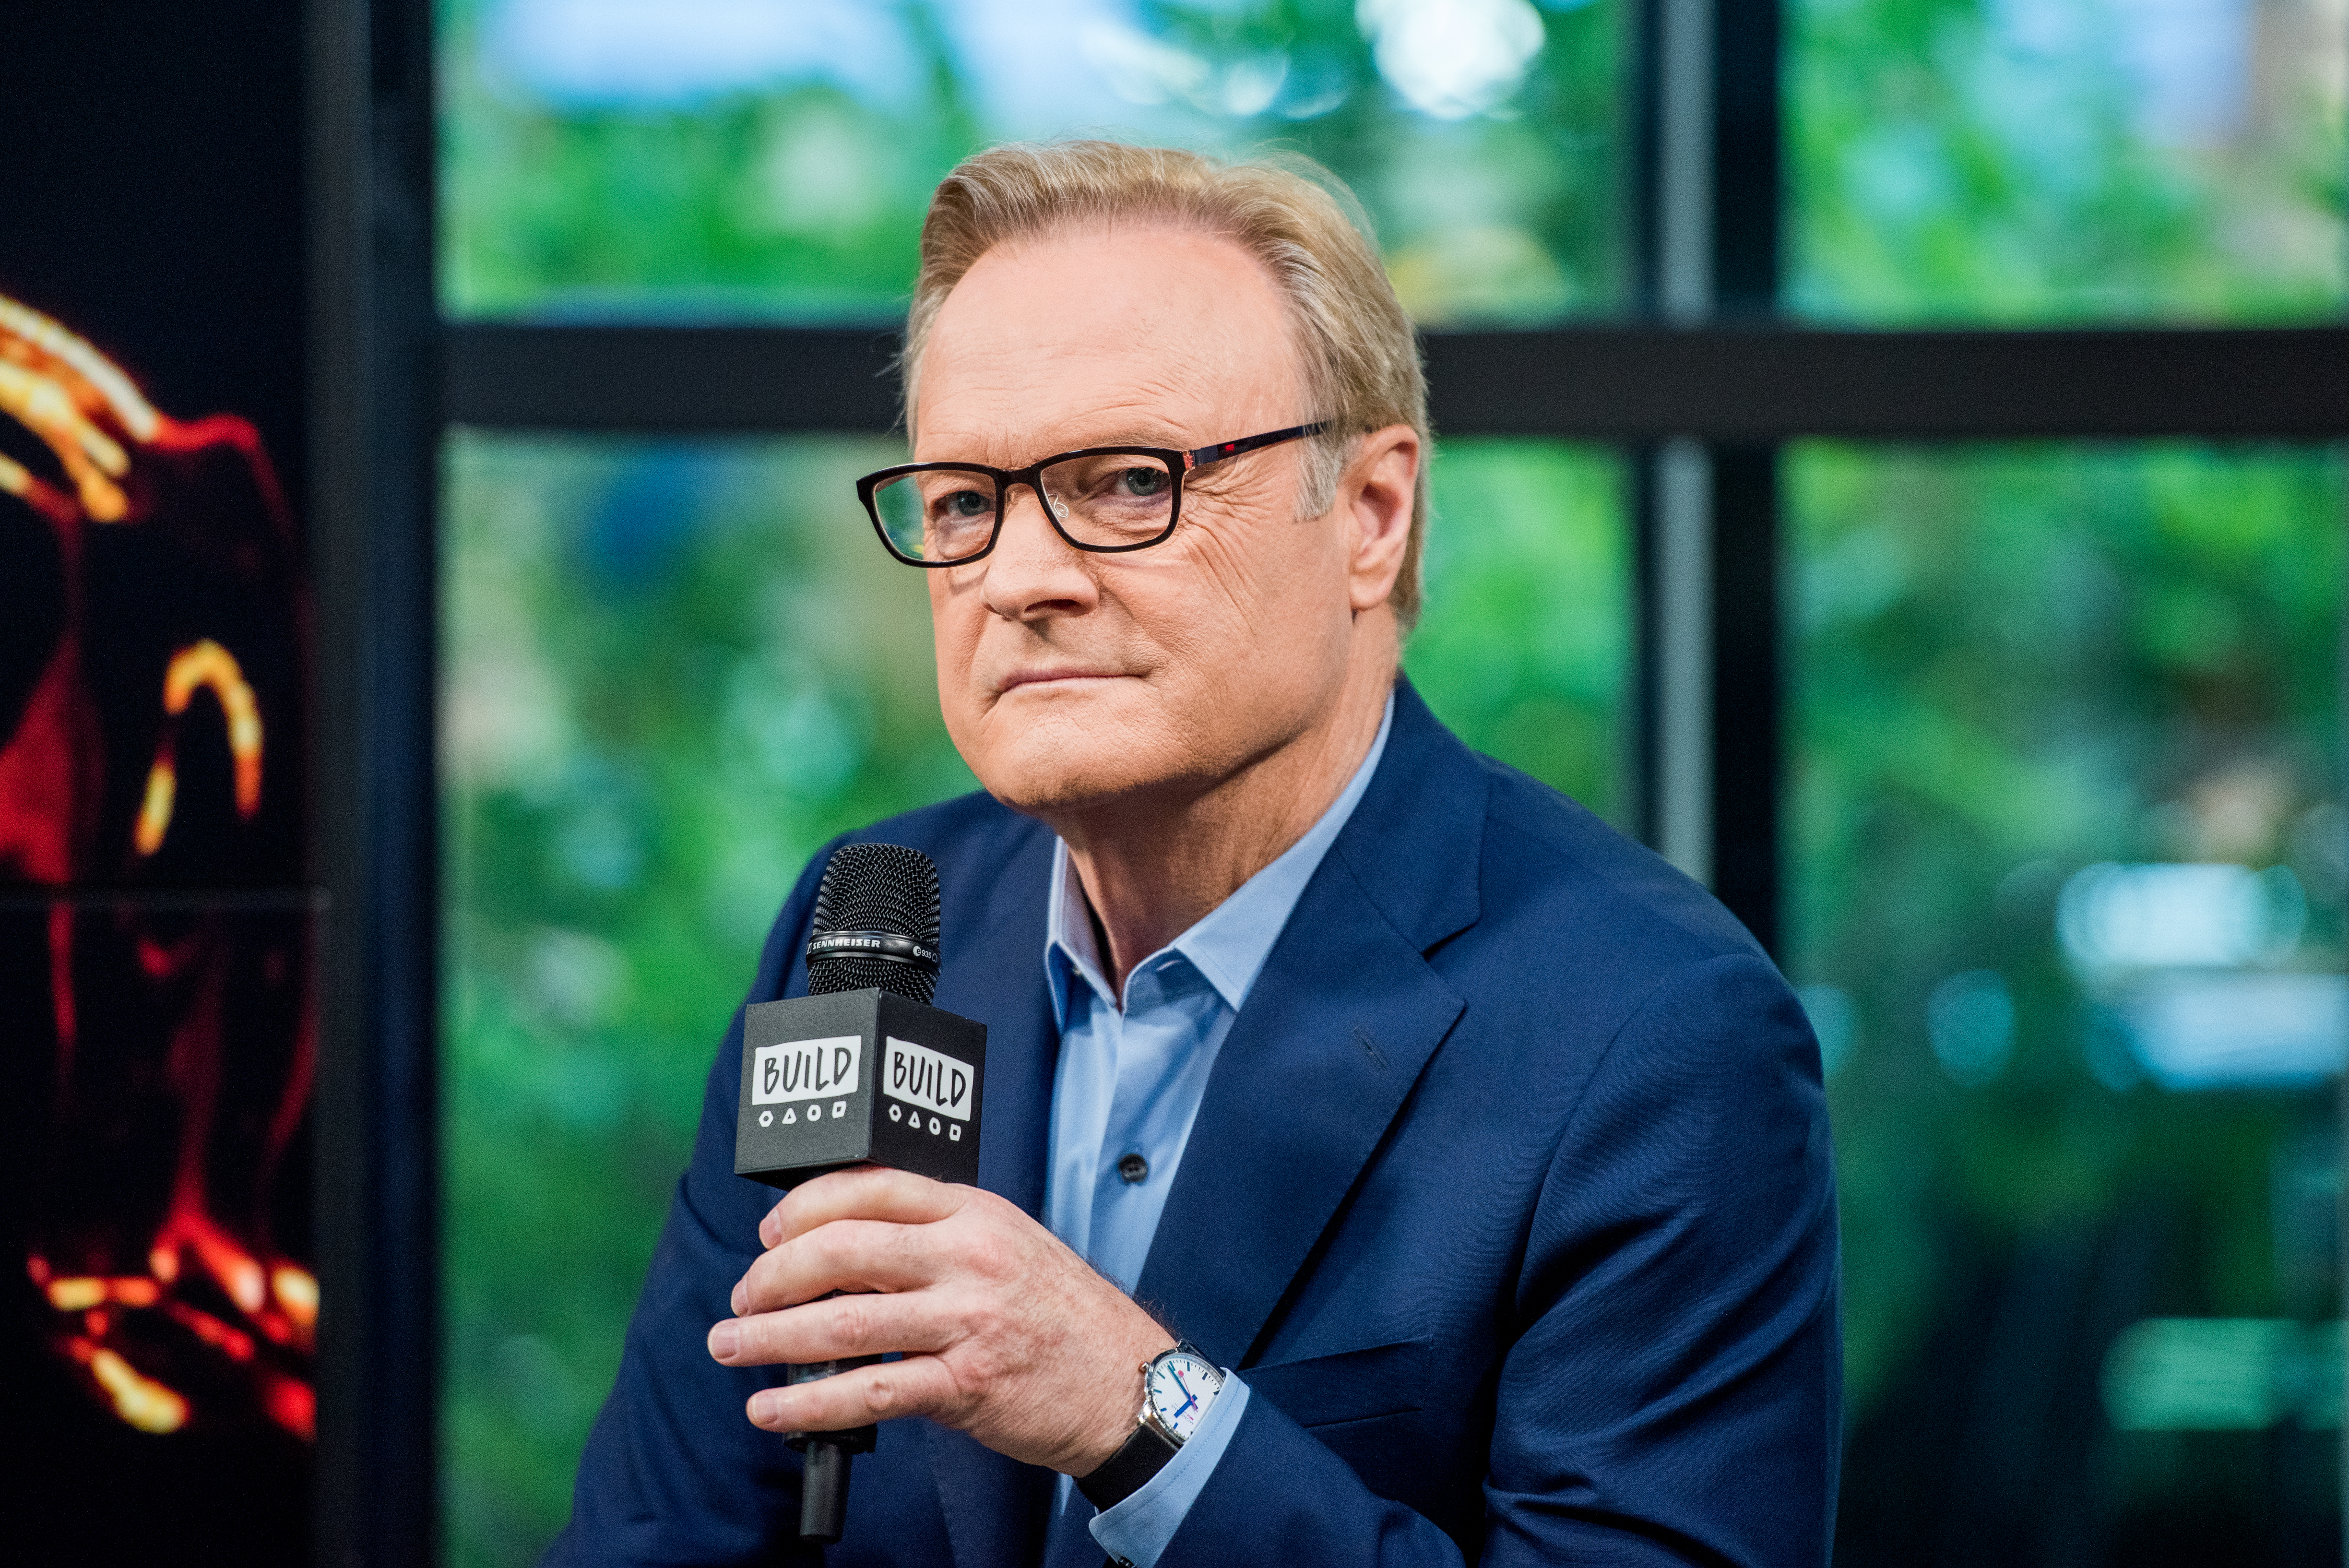 Lawrence O'Donnell discusses  In & Of Itself  with the build series at Build Studio on June 28, 2017.